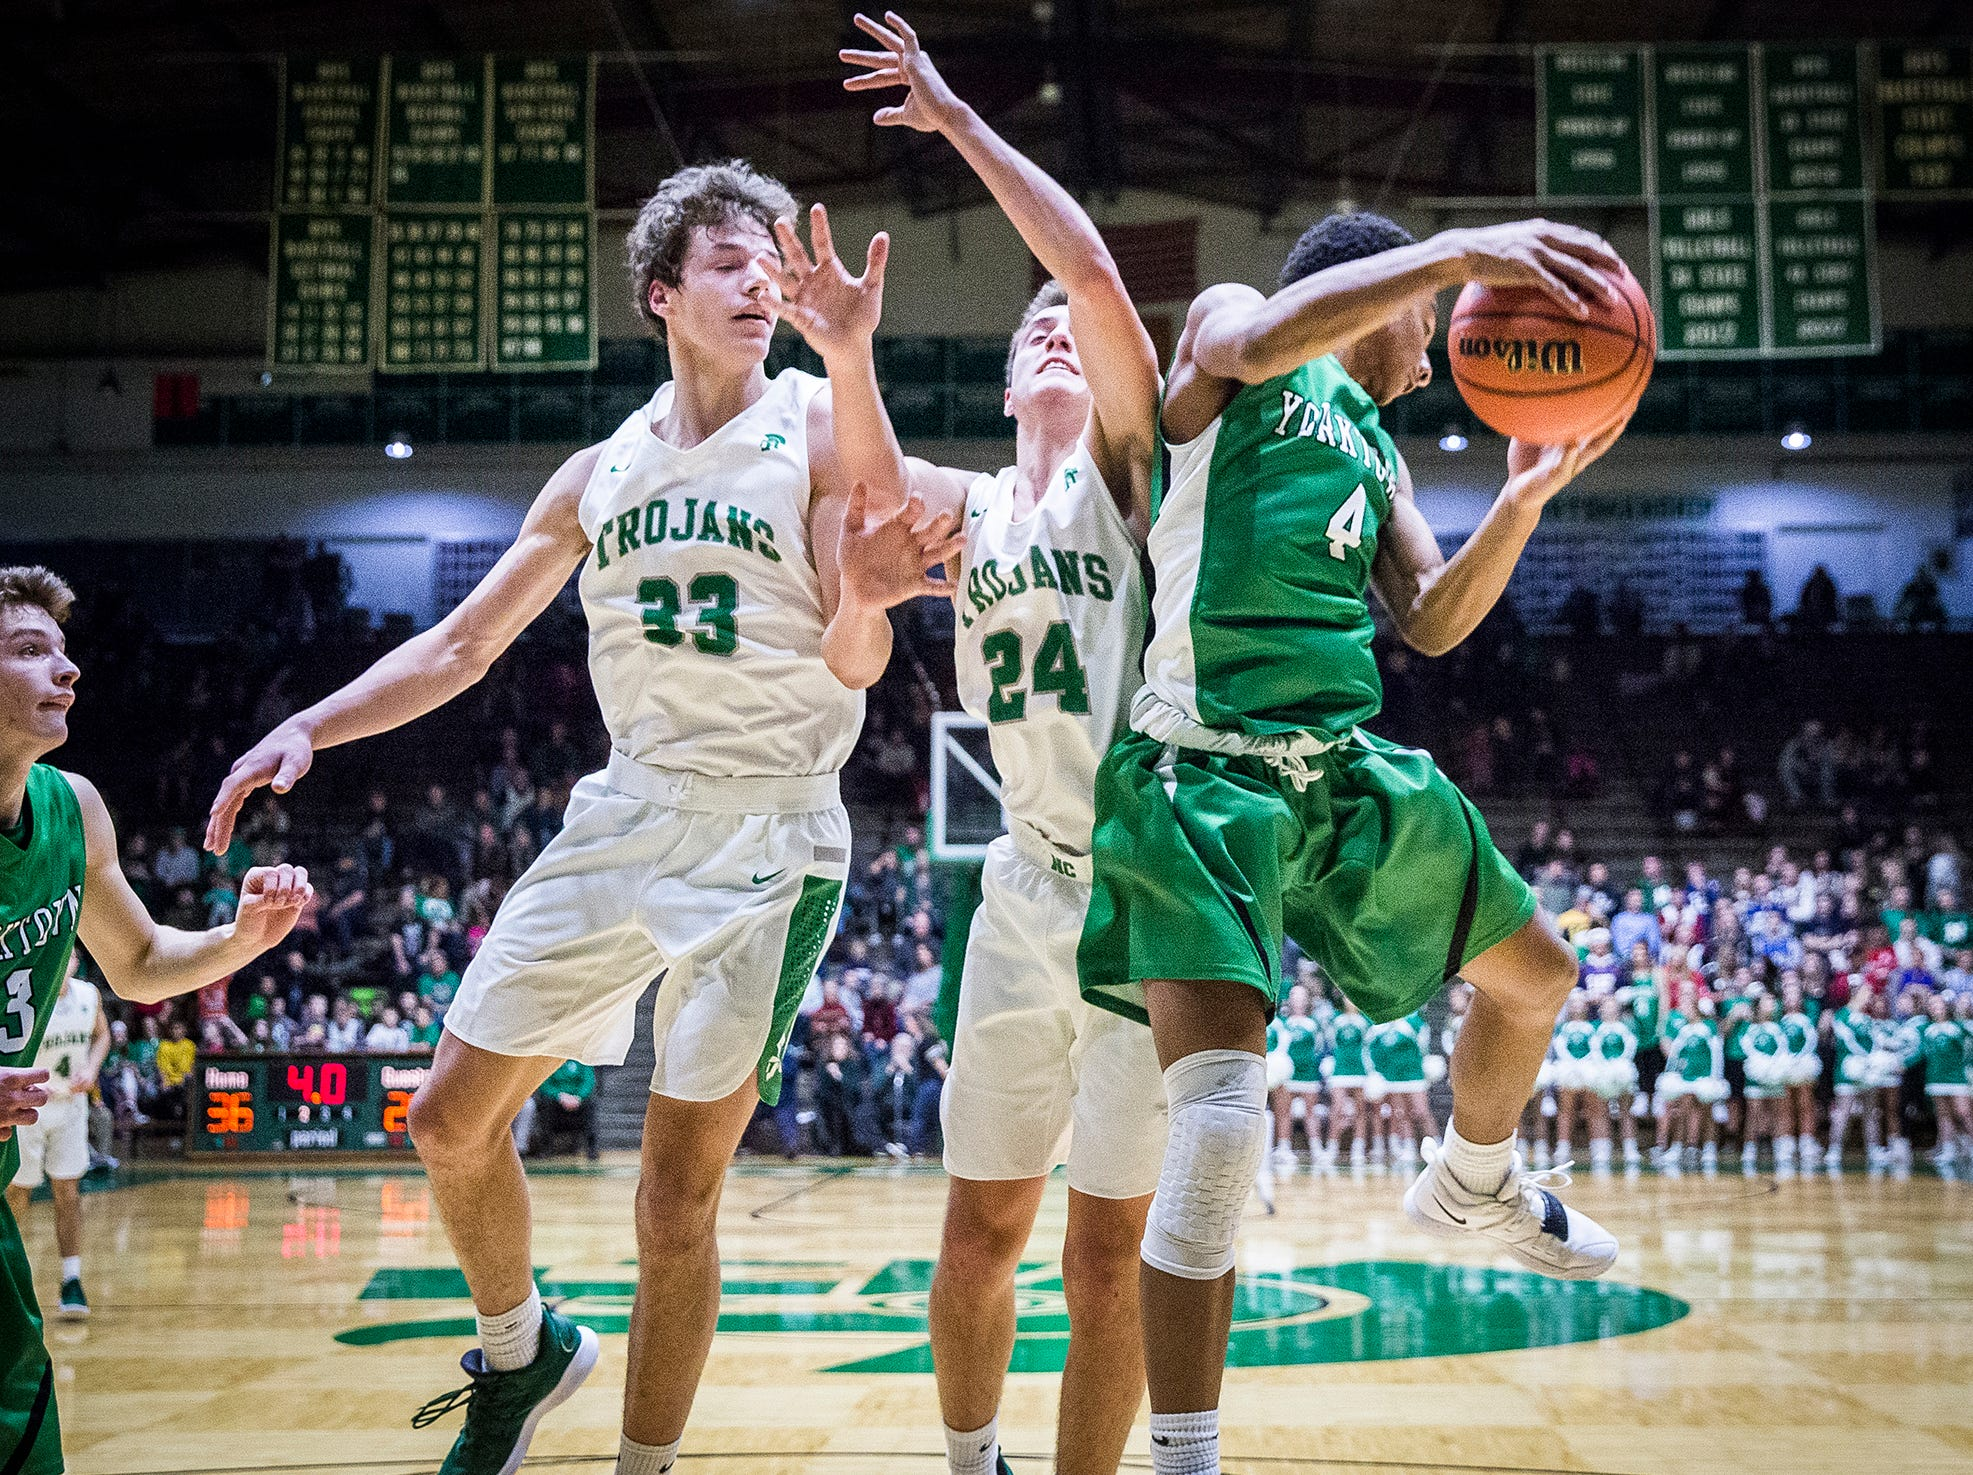 New Castle faces off against Yorktown during their game at New Castle High School Friday, Jan. 18, 2019.